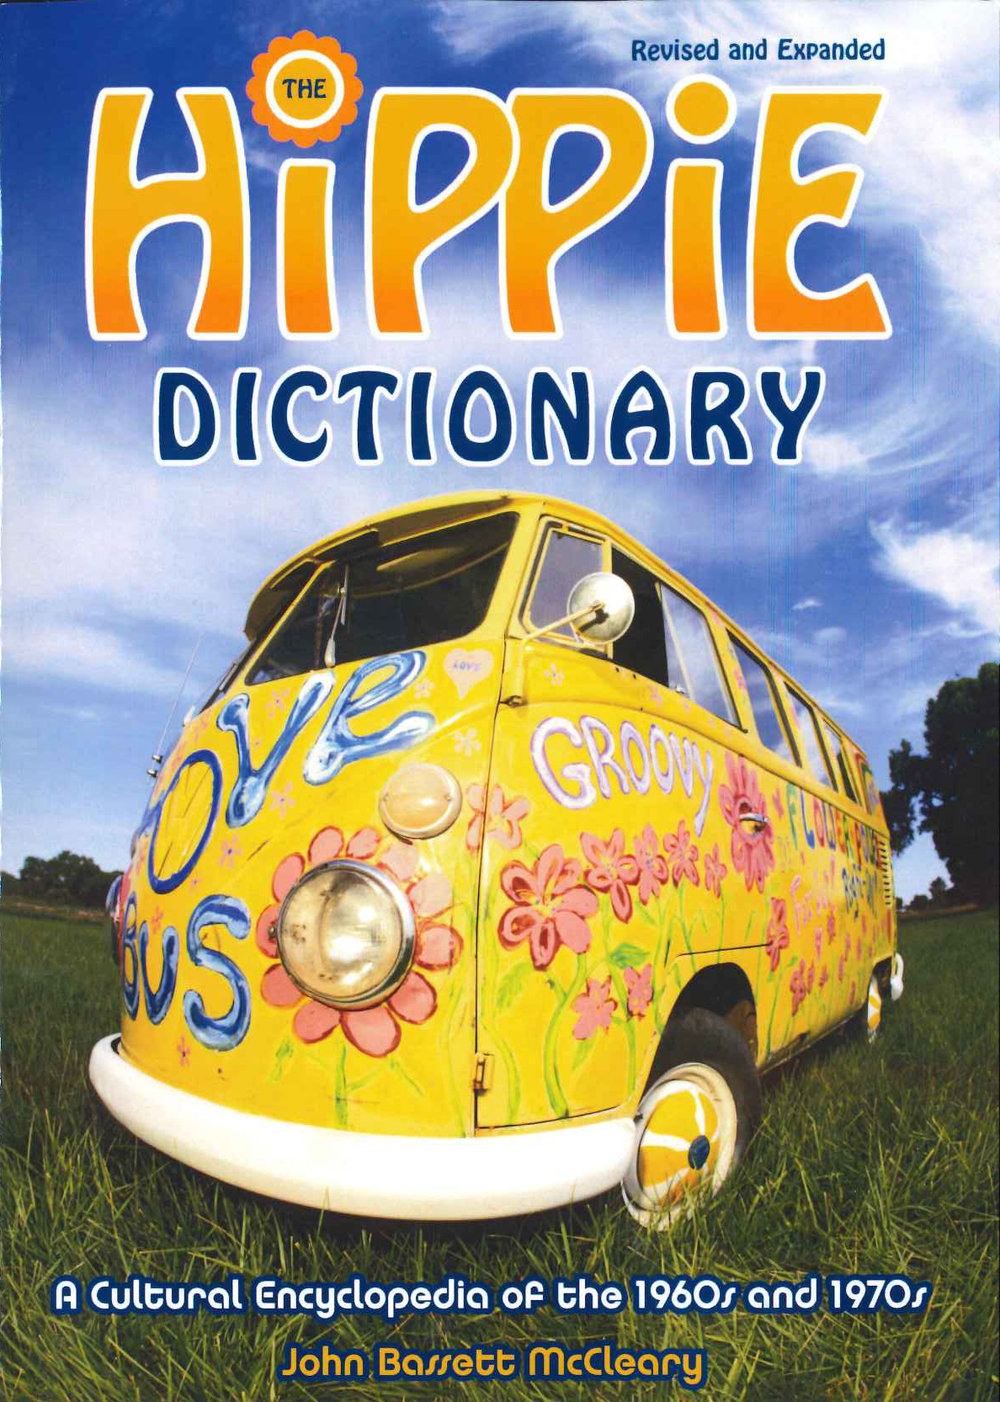 Hippie Dictionary by John Bassett McCleary for sale at New Musuem Los Gatos.jpg